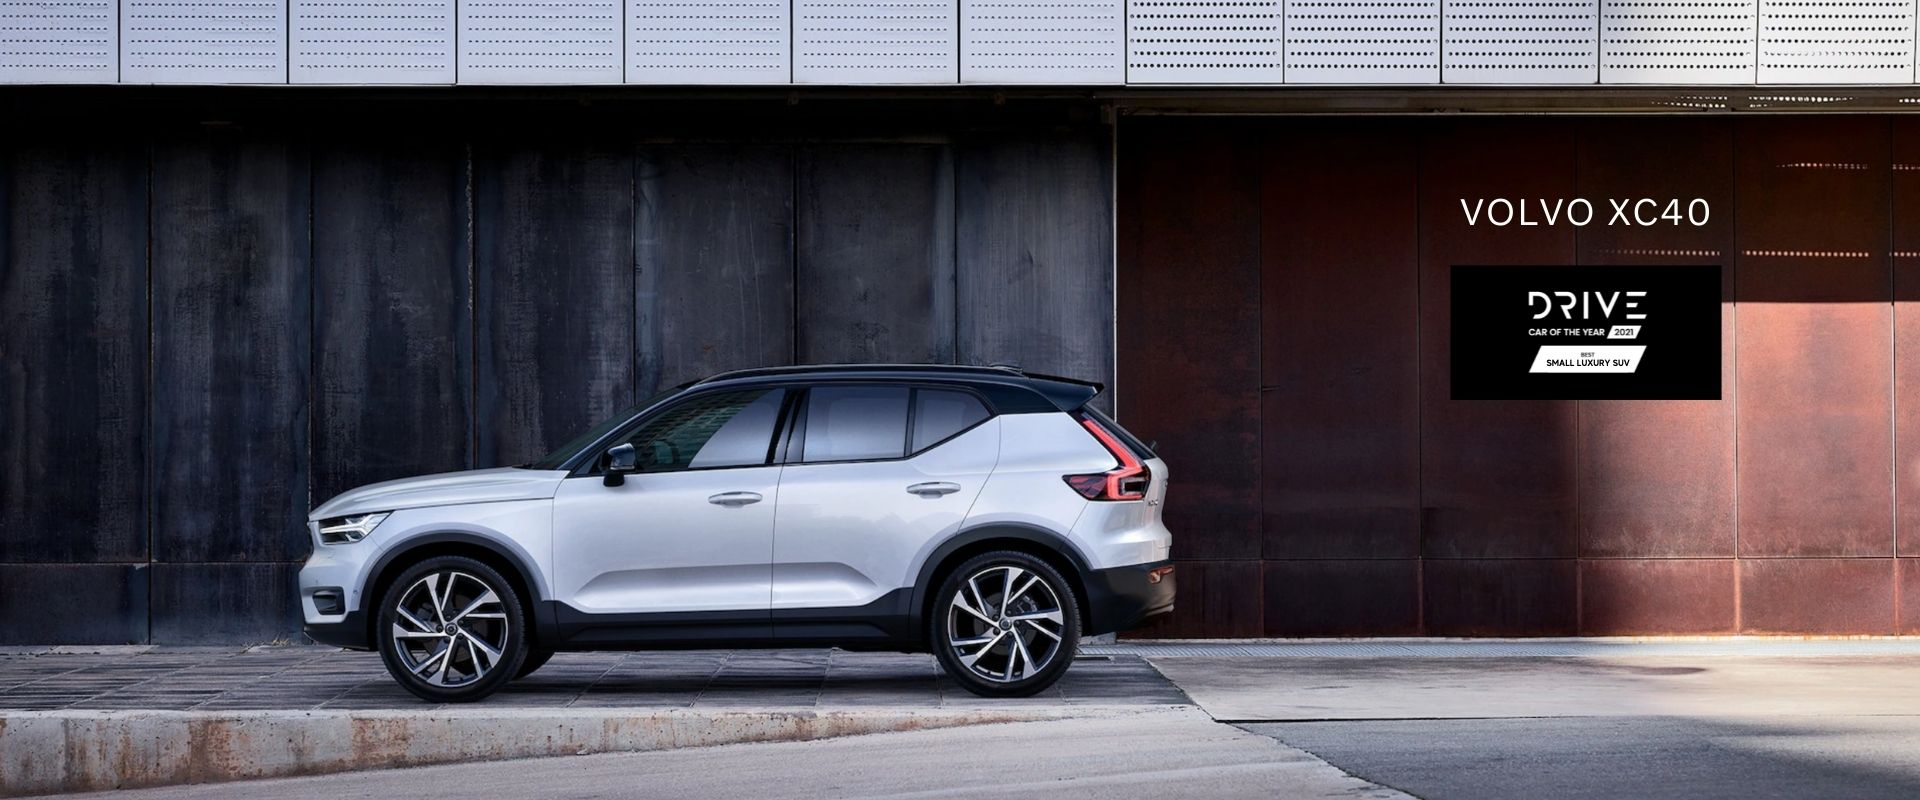 Volvo XC40 Car of the Year Best Small Luxury SUV Award